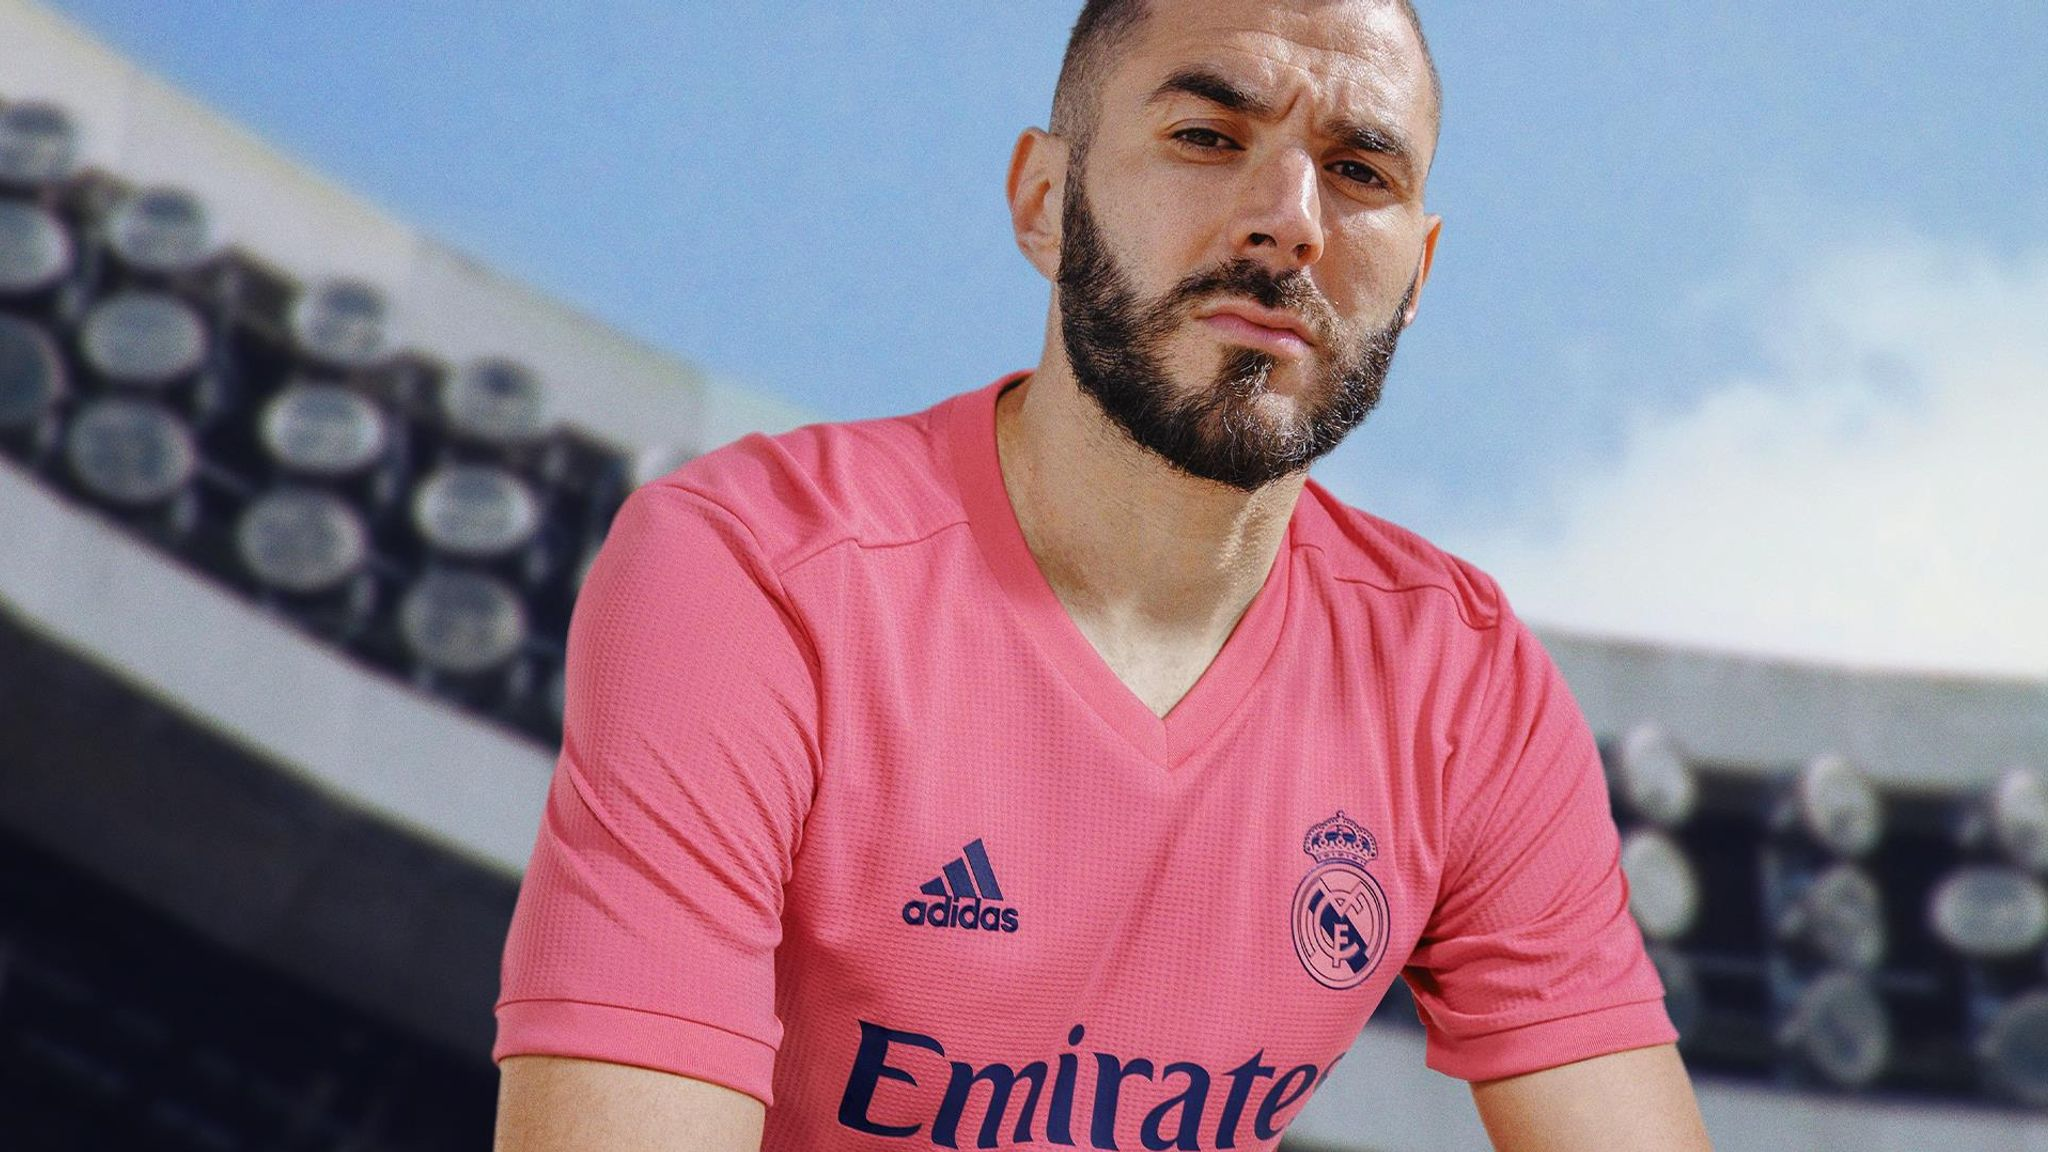 New Kits 2020 21 Barcelona Real Madrid Inter And More From Europe Football News Sky Sports